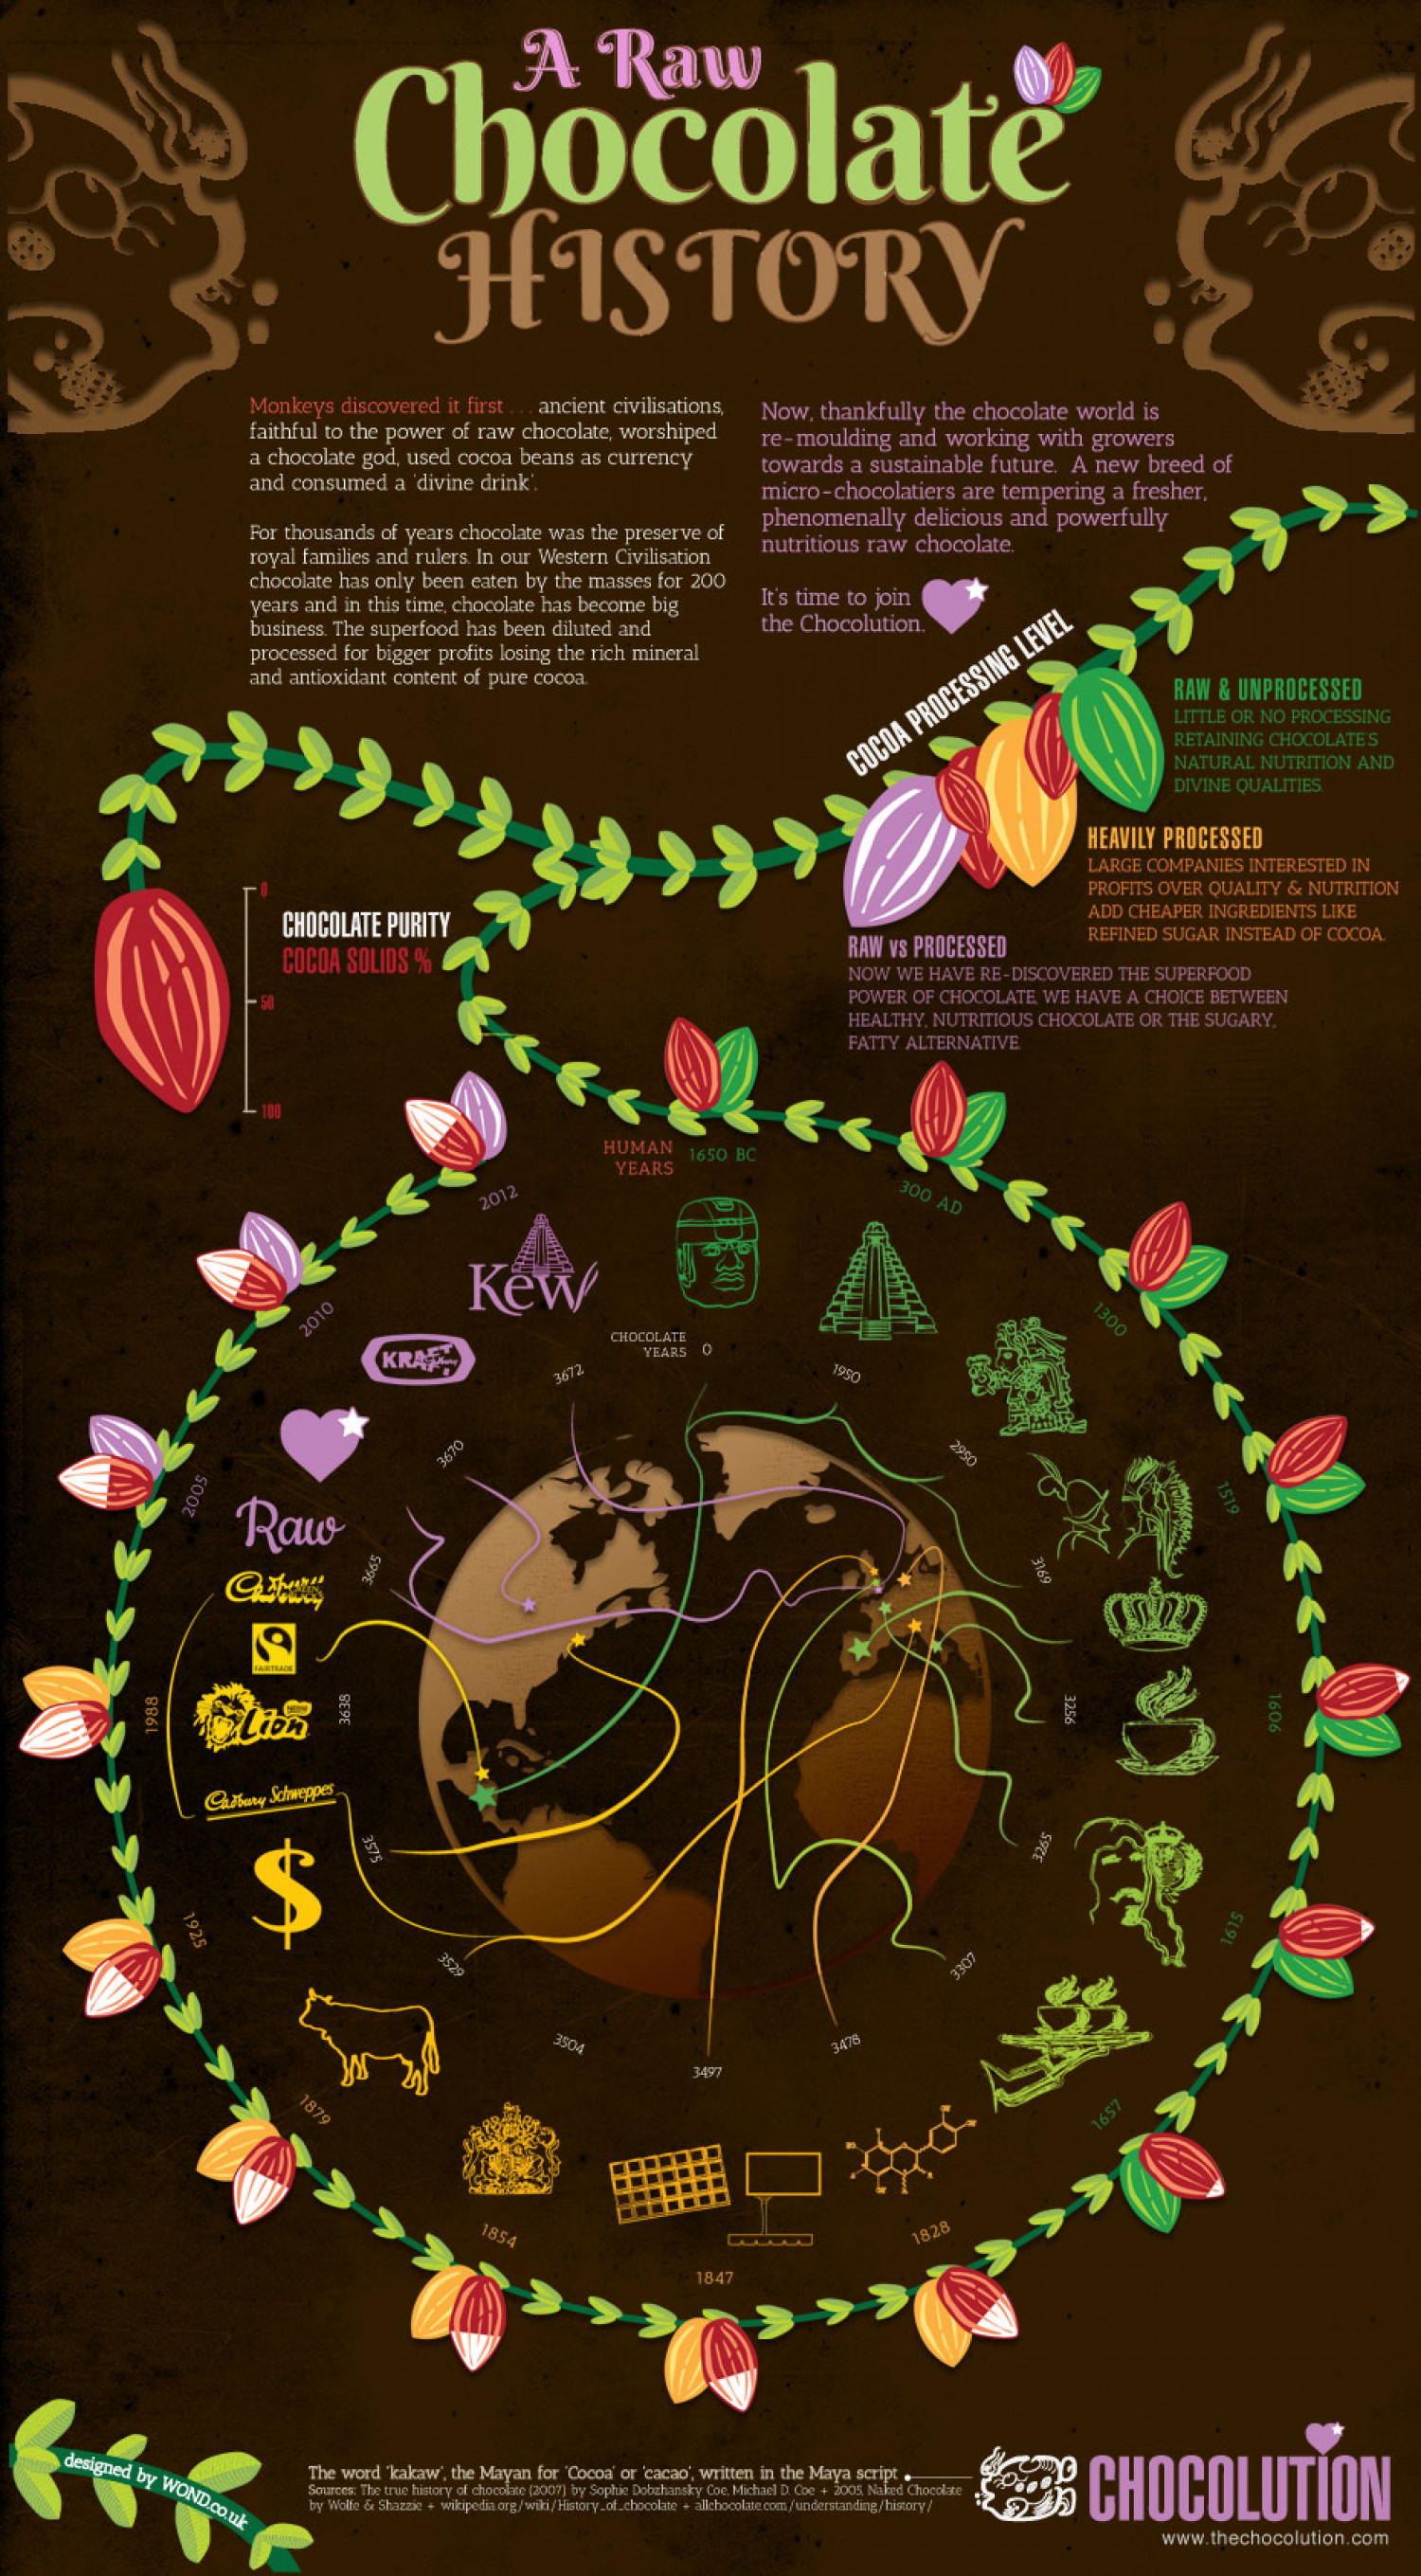 A Raw Chocolate History Infographic